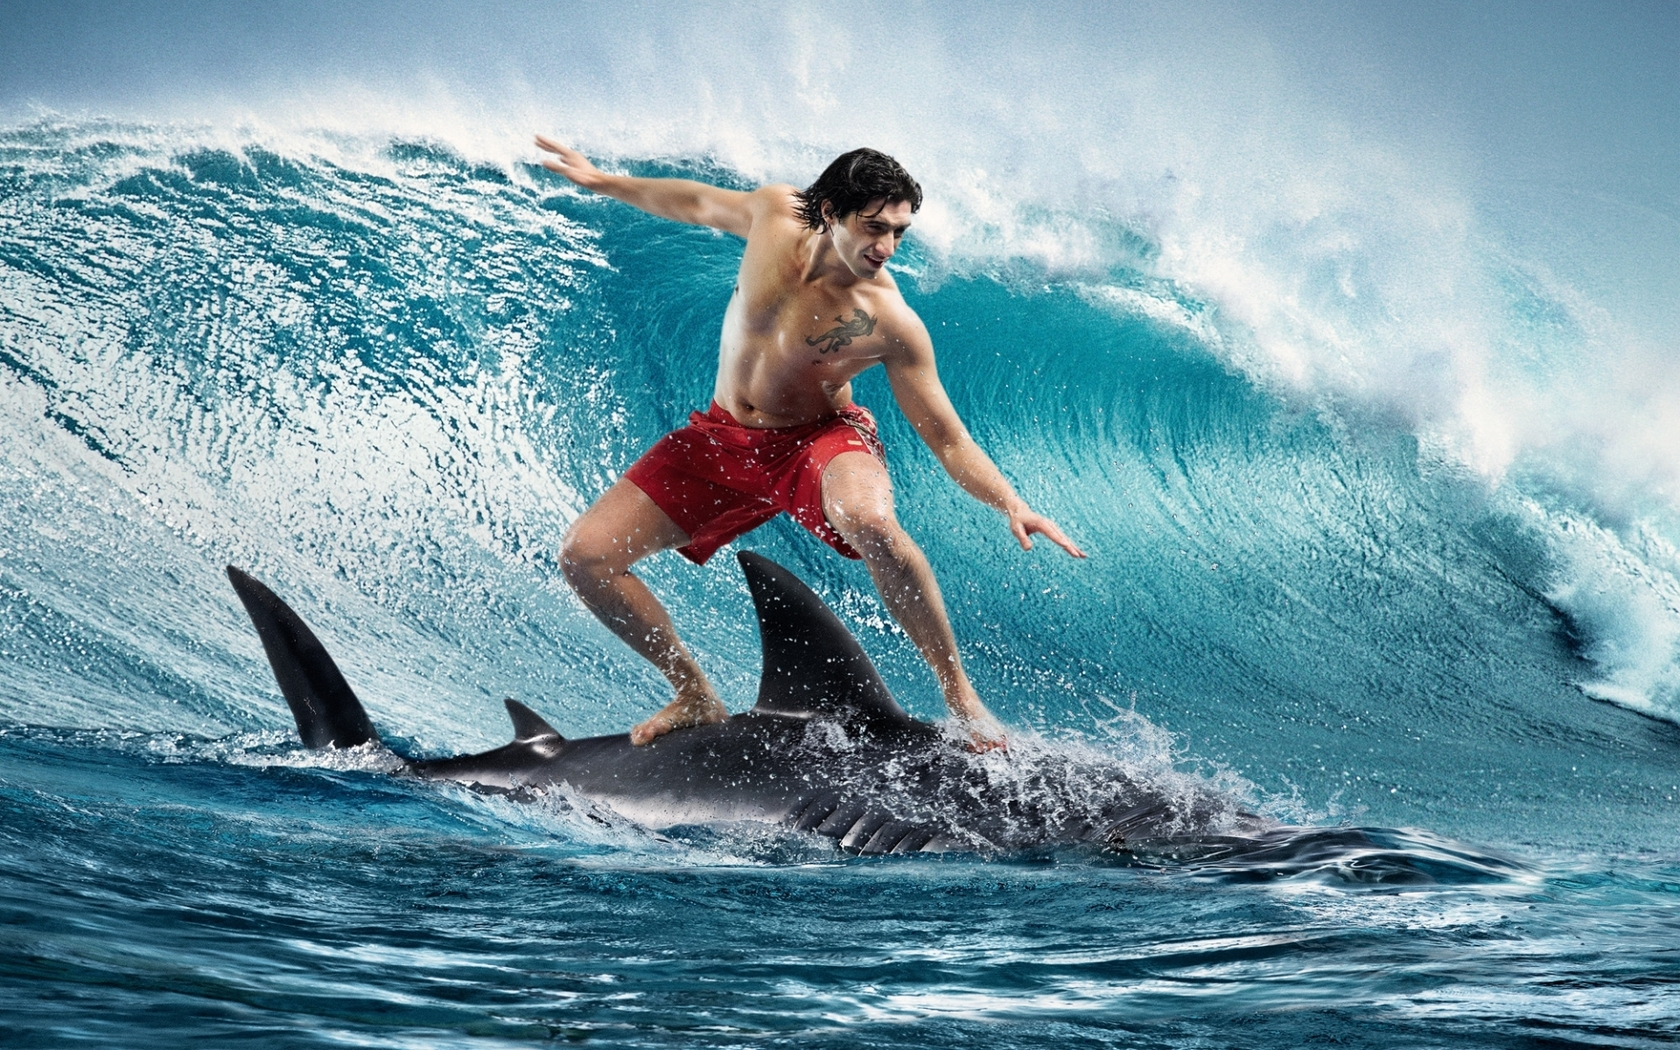 Boy On Shark Surfing 1680x1050 1094 HD Wallpaper Res 1680x1050 1680x1050